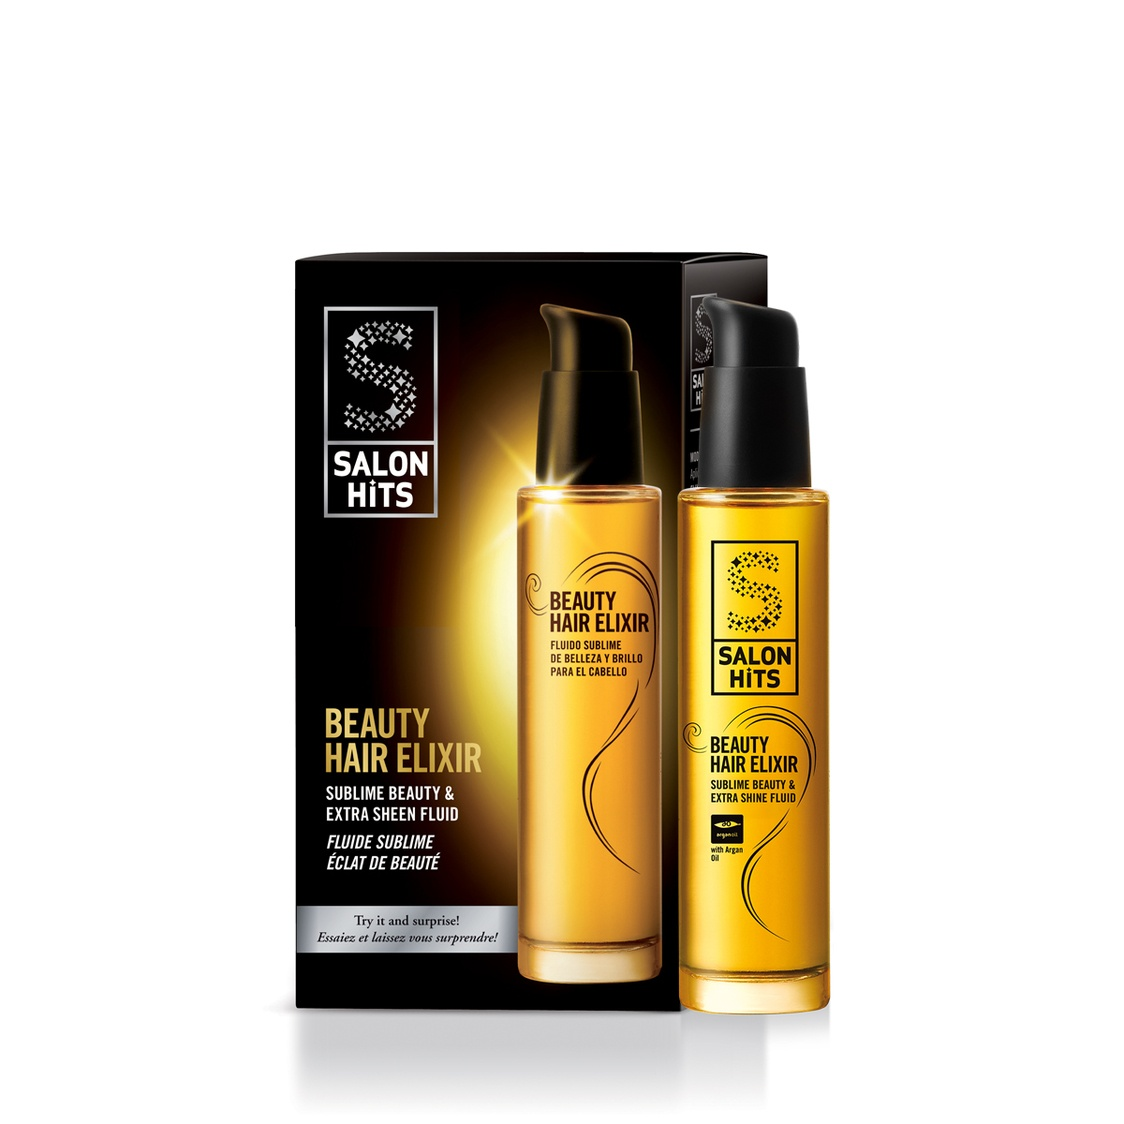 Salon Hits Beauty Hair Elixir Sublime Beauty  Extra Shine Fluid